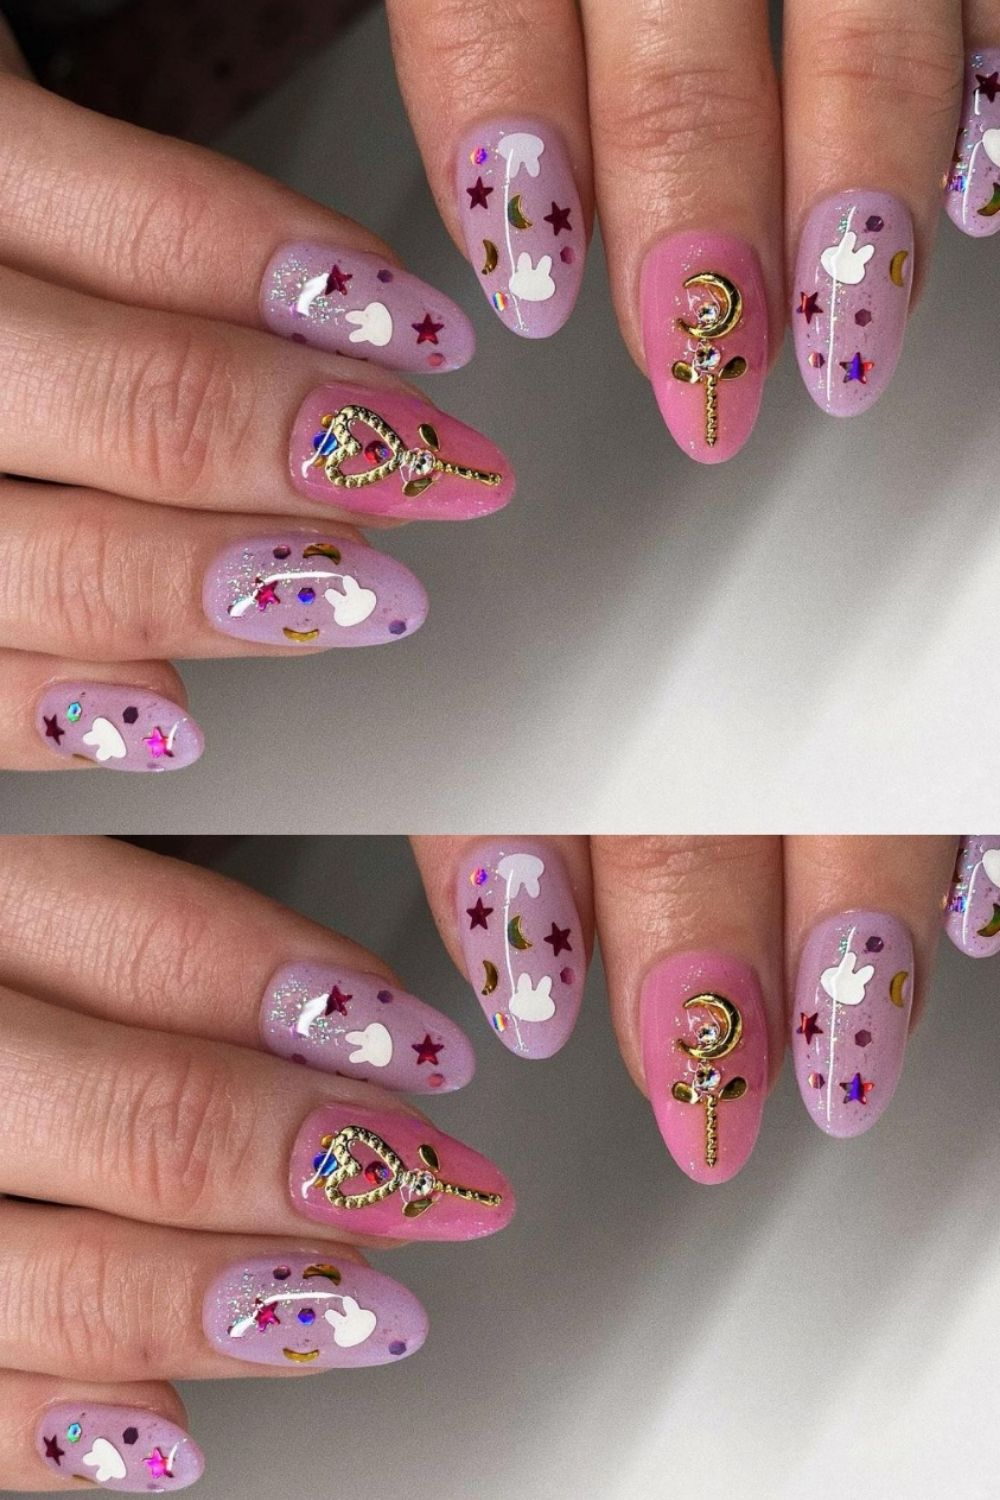 35+ Amazing Glitter Acrylic Nails You Want To Try In 2021!